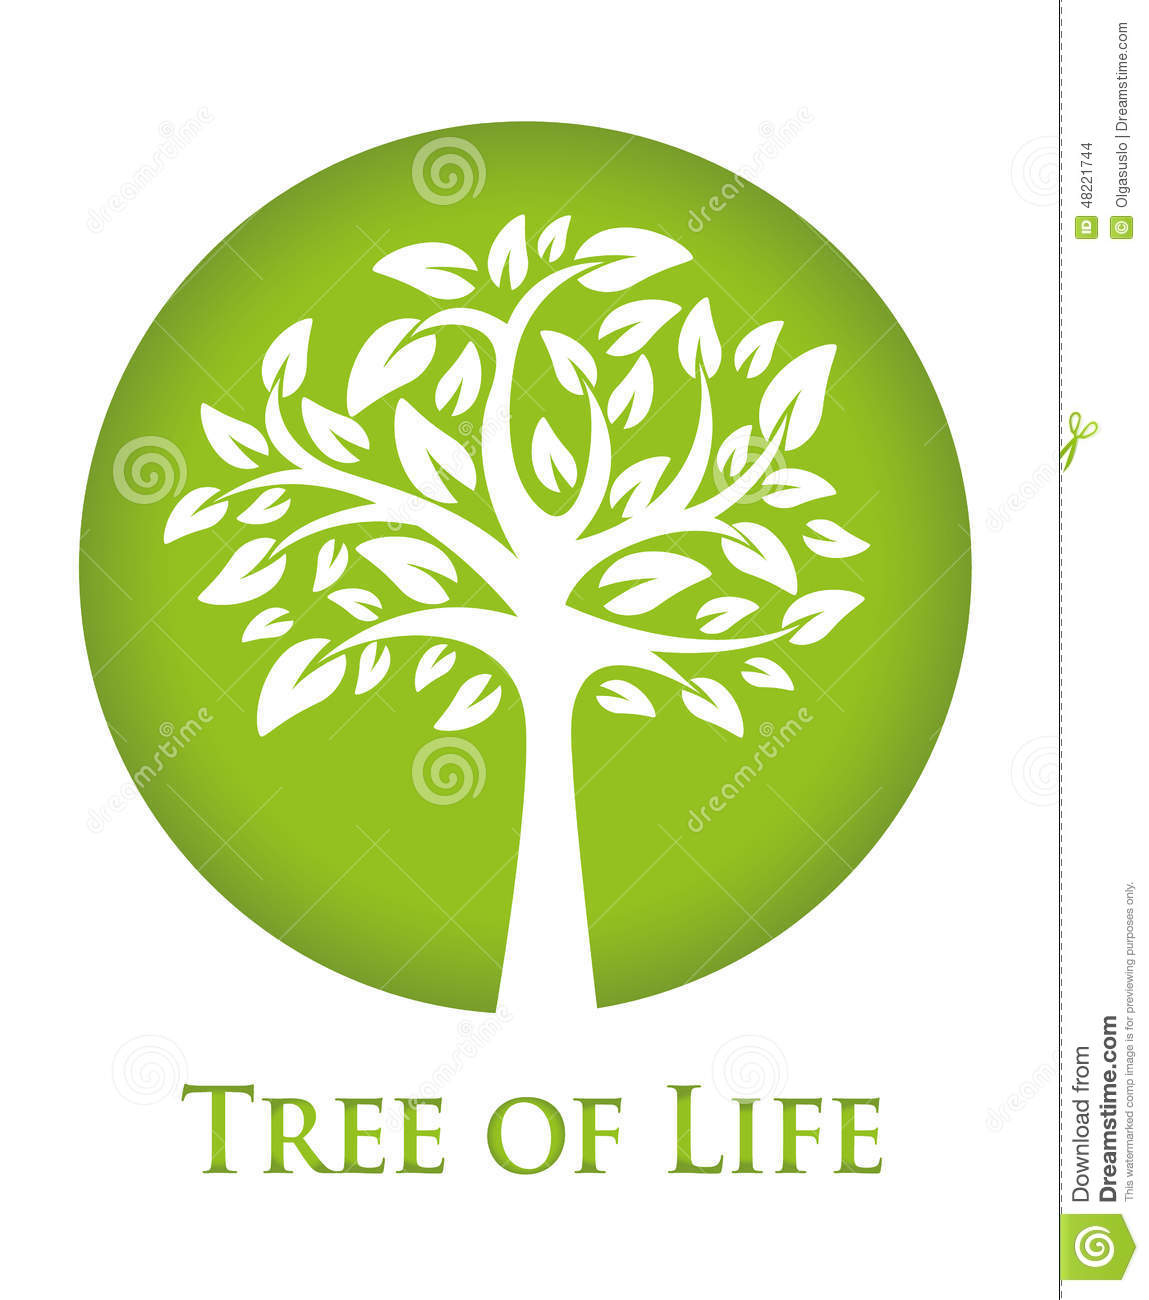 tree of life stock vector illustration of environmental 48221744